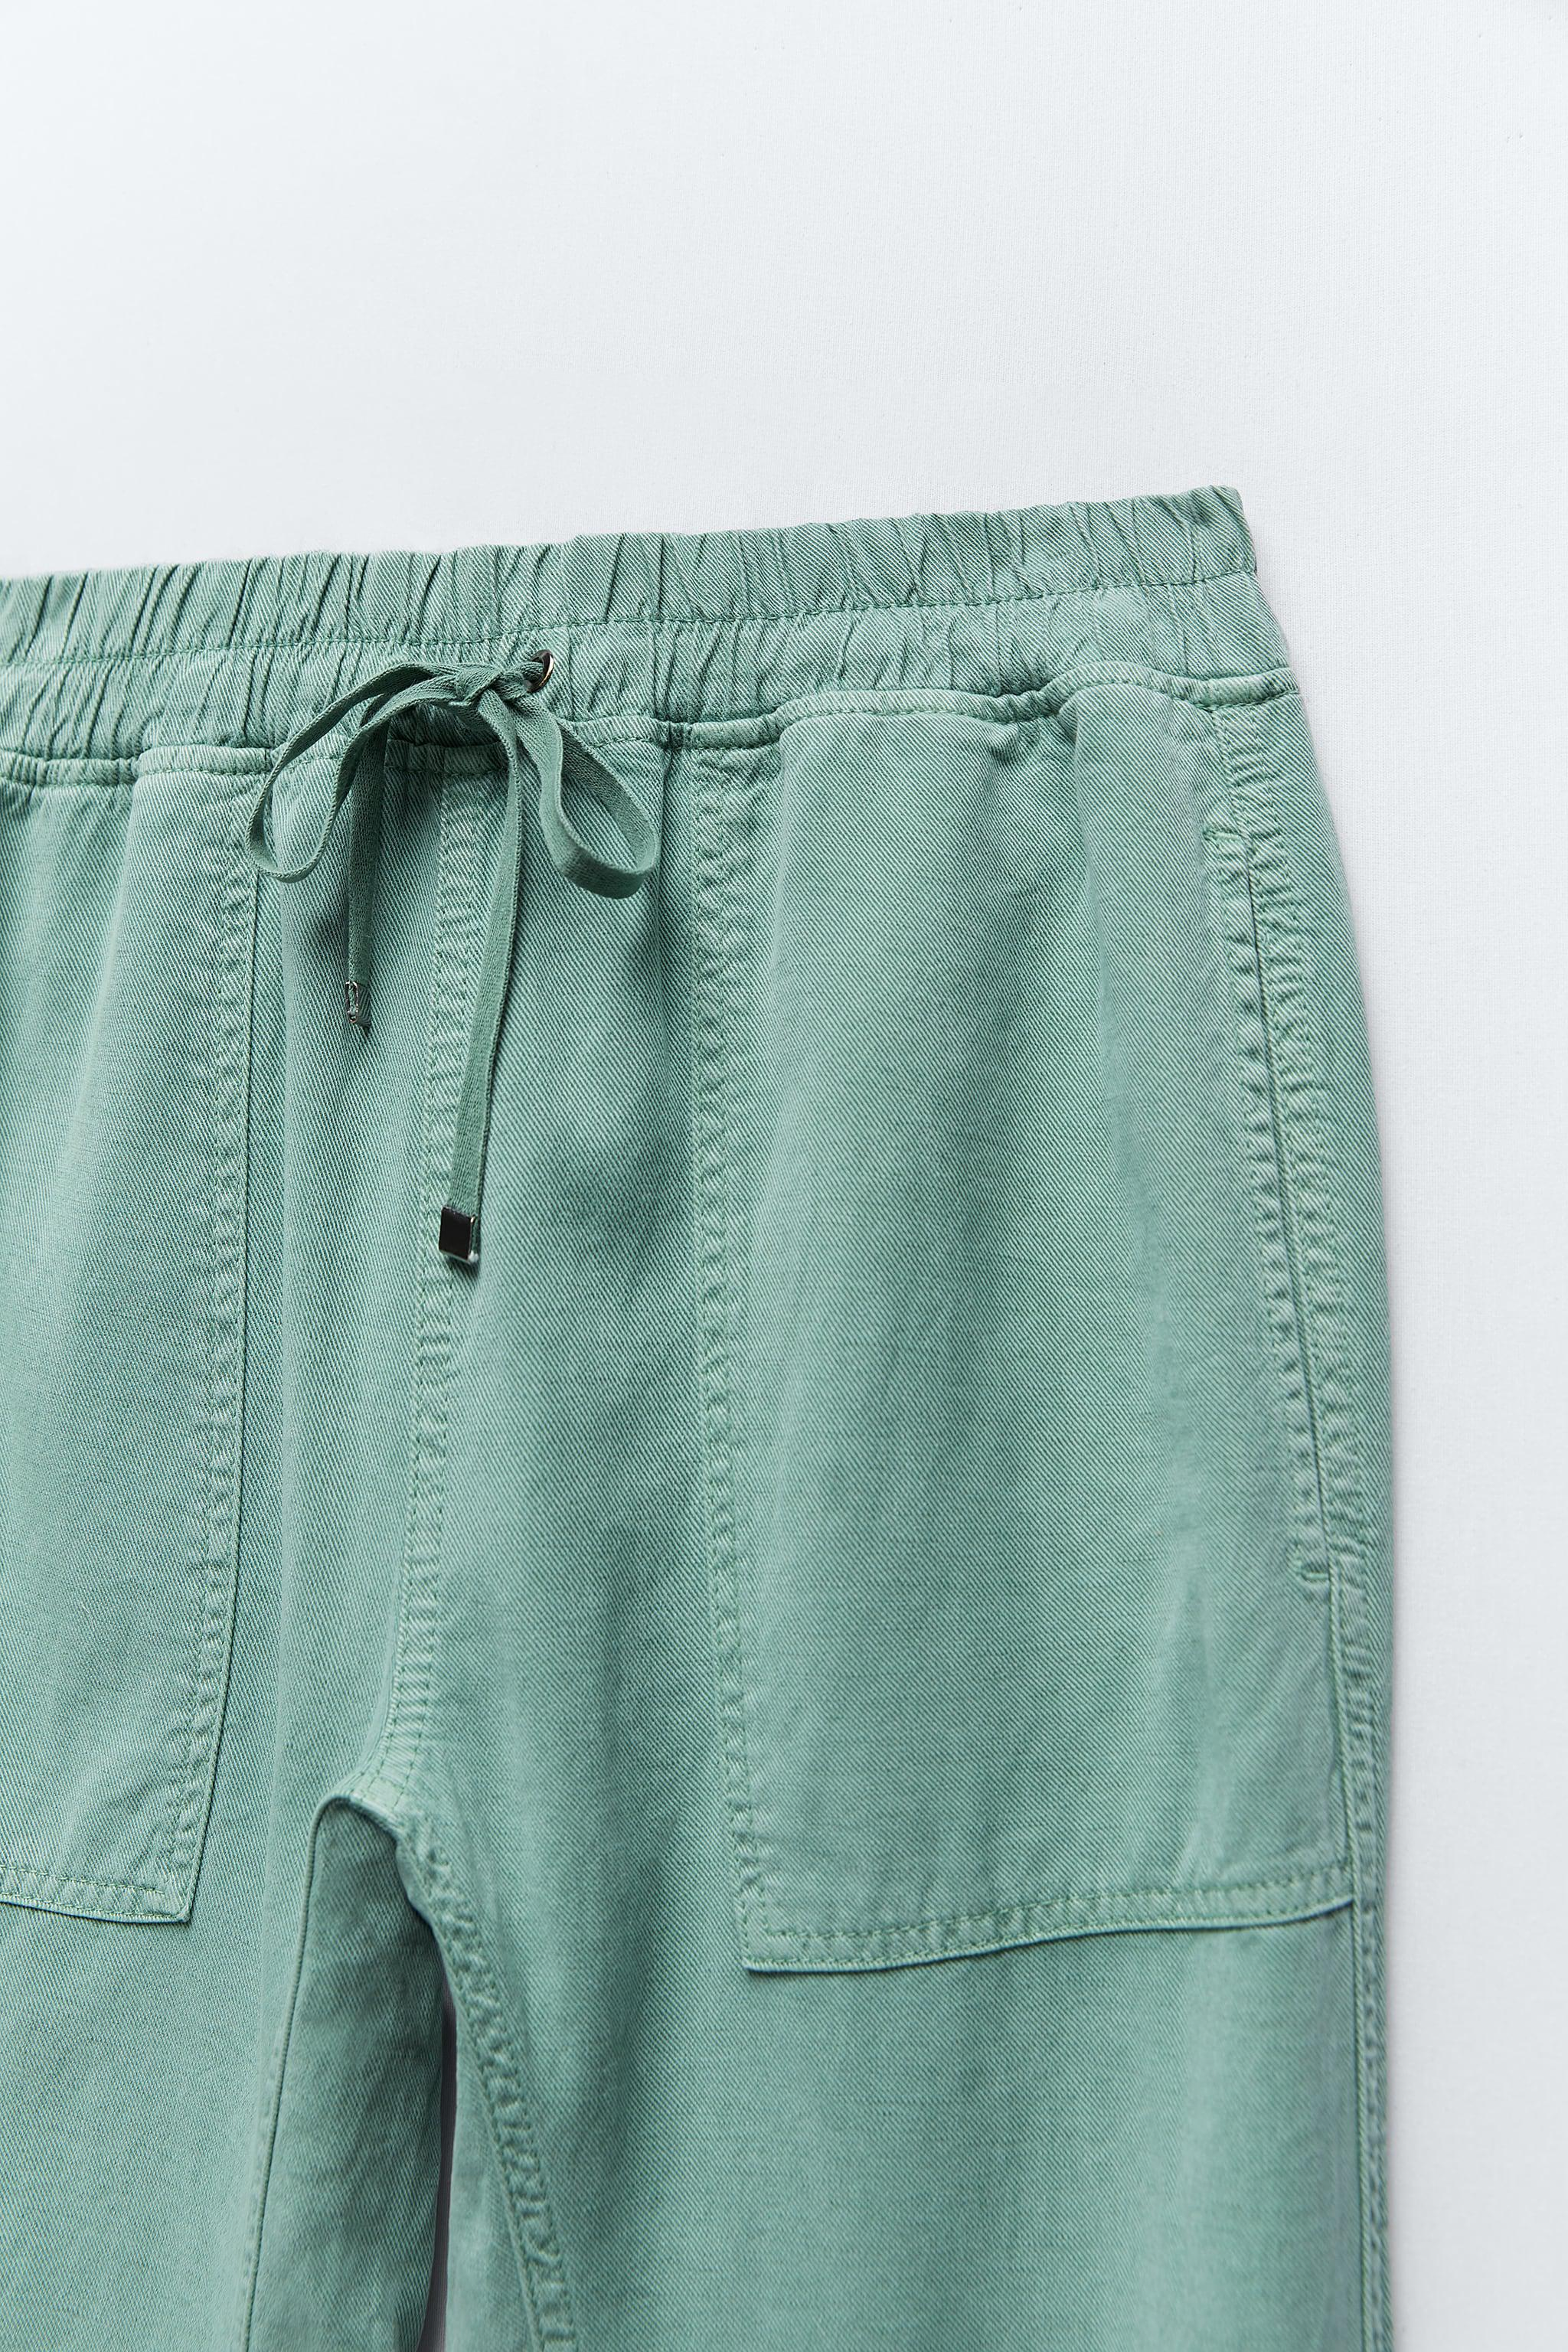 THE WEEKEND JOGGER PANTS 5